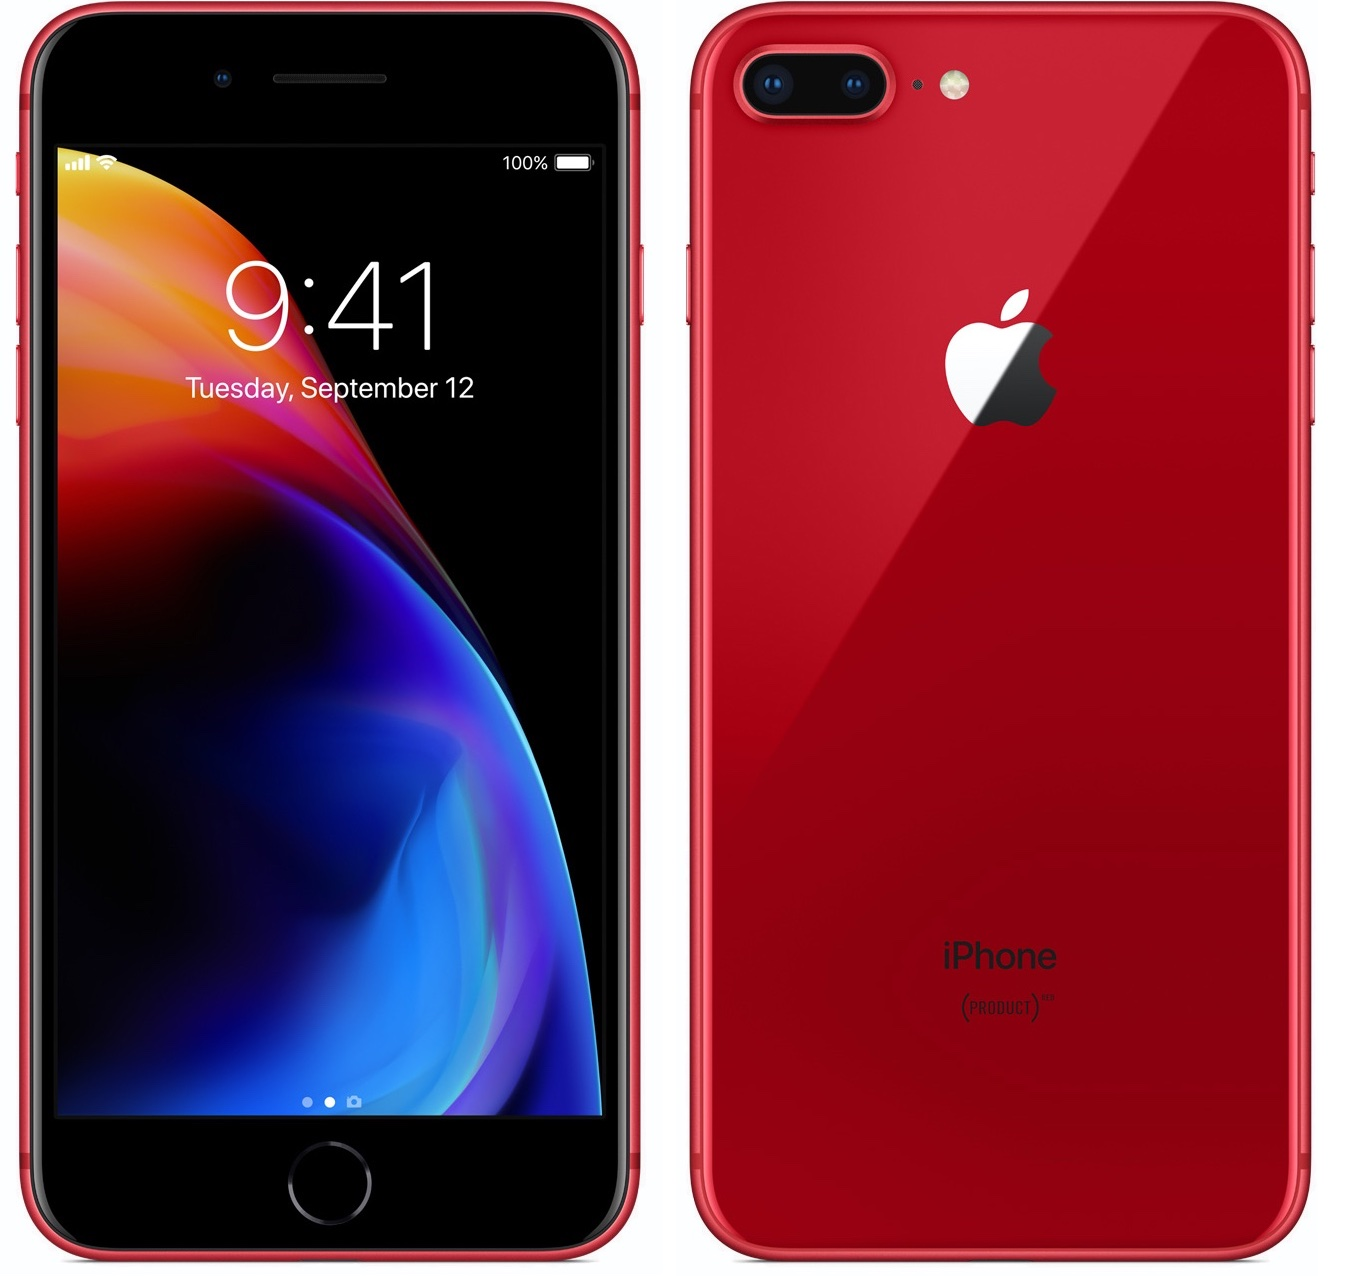 Stunning Black Wallpapers Iphone 8 Product Red Edition Available To Order Tomorrow